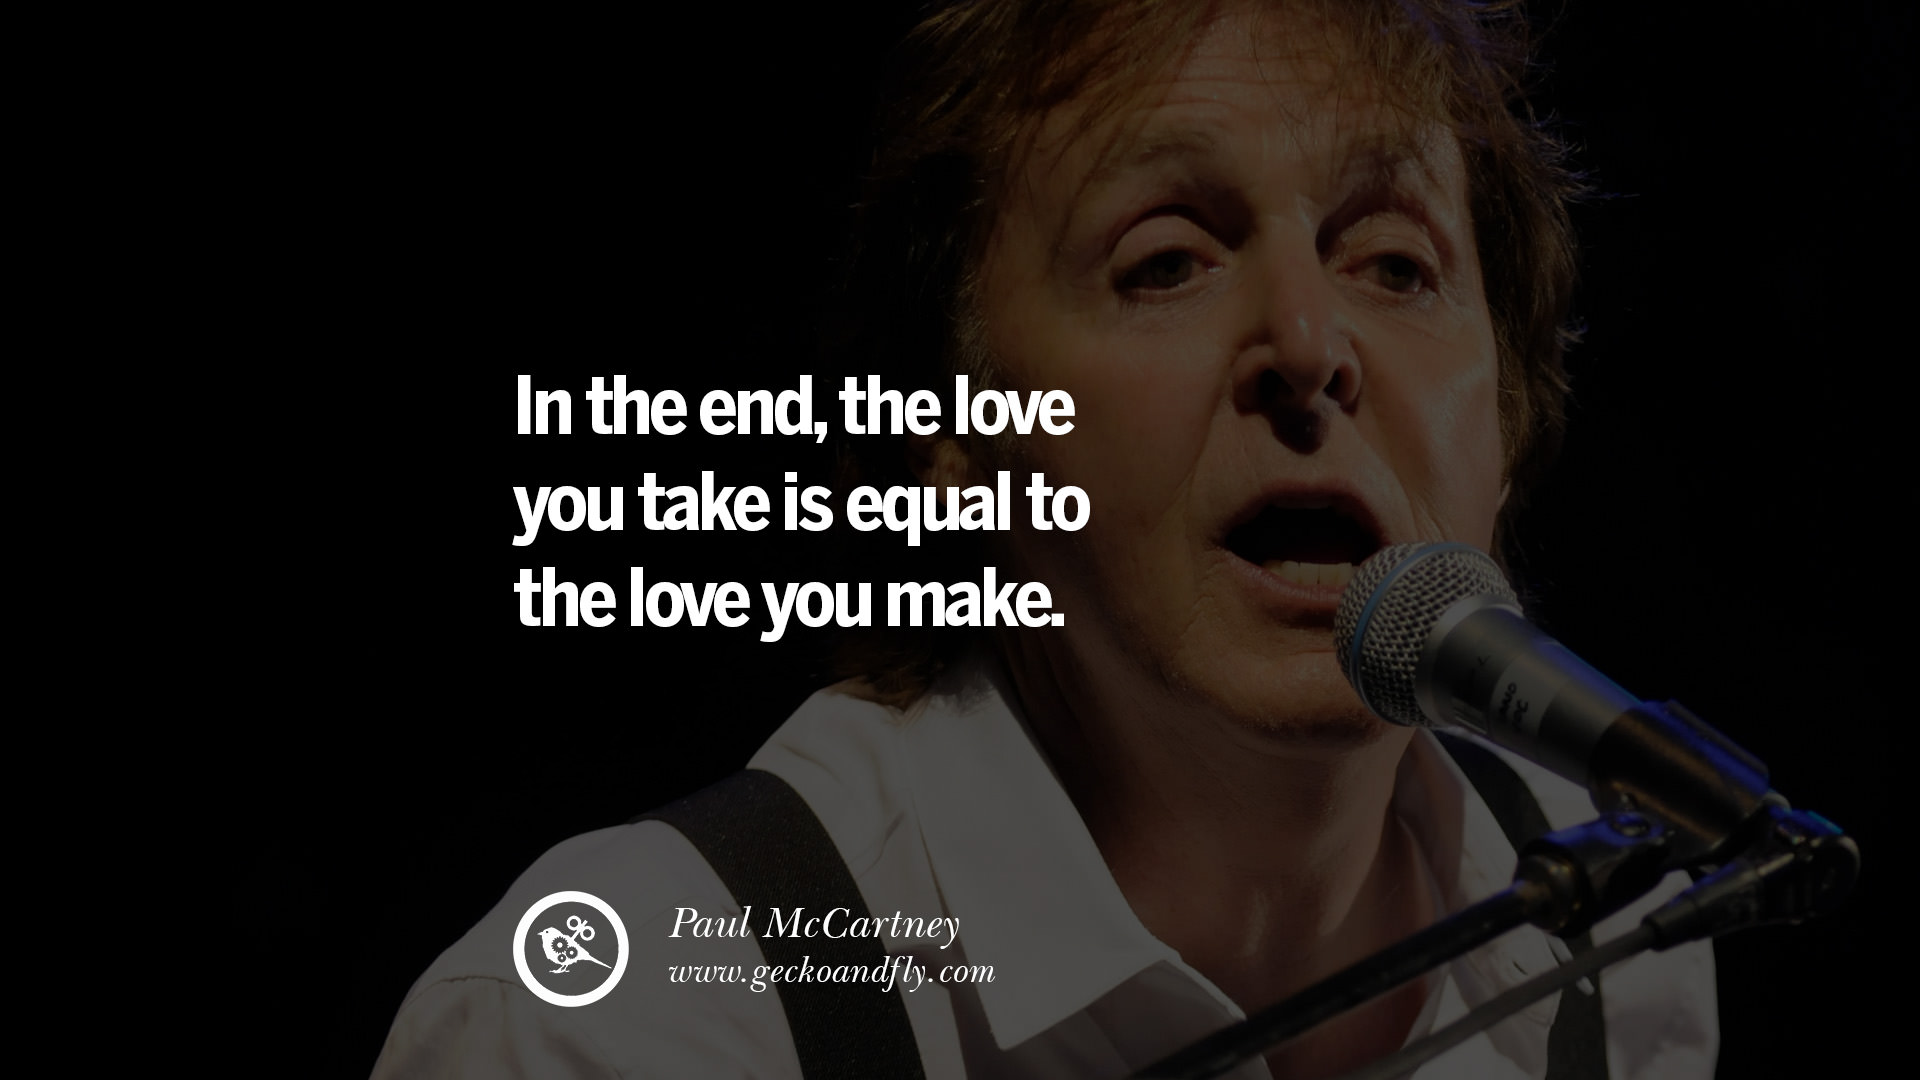 10 Quote By Paul McCartney On Vegetarianism, Life And Love